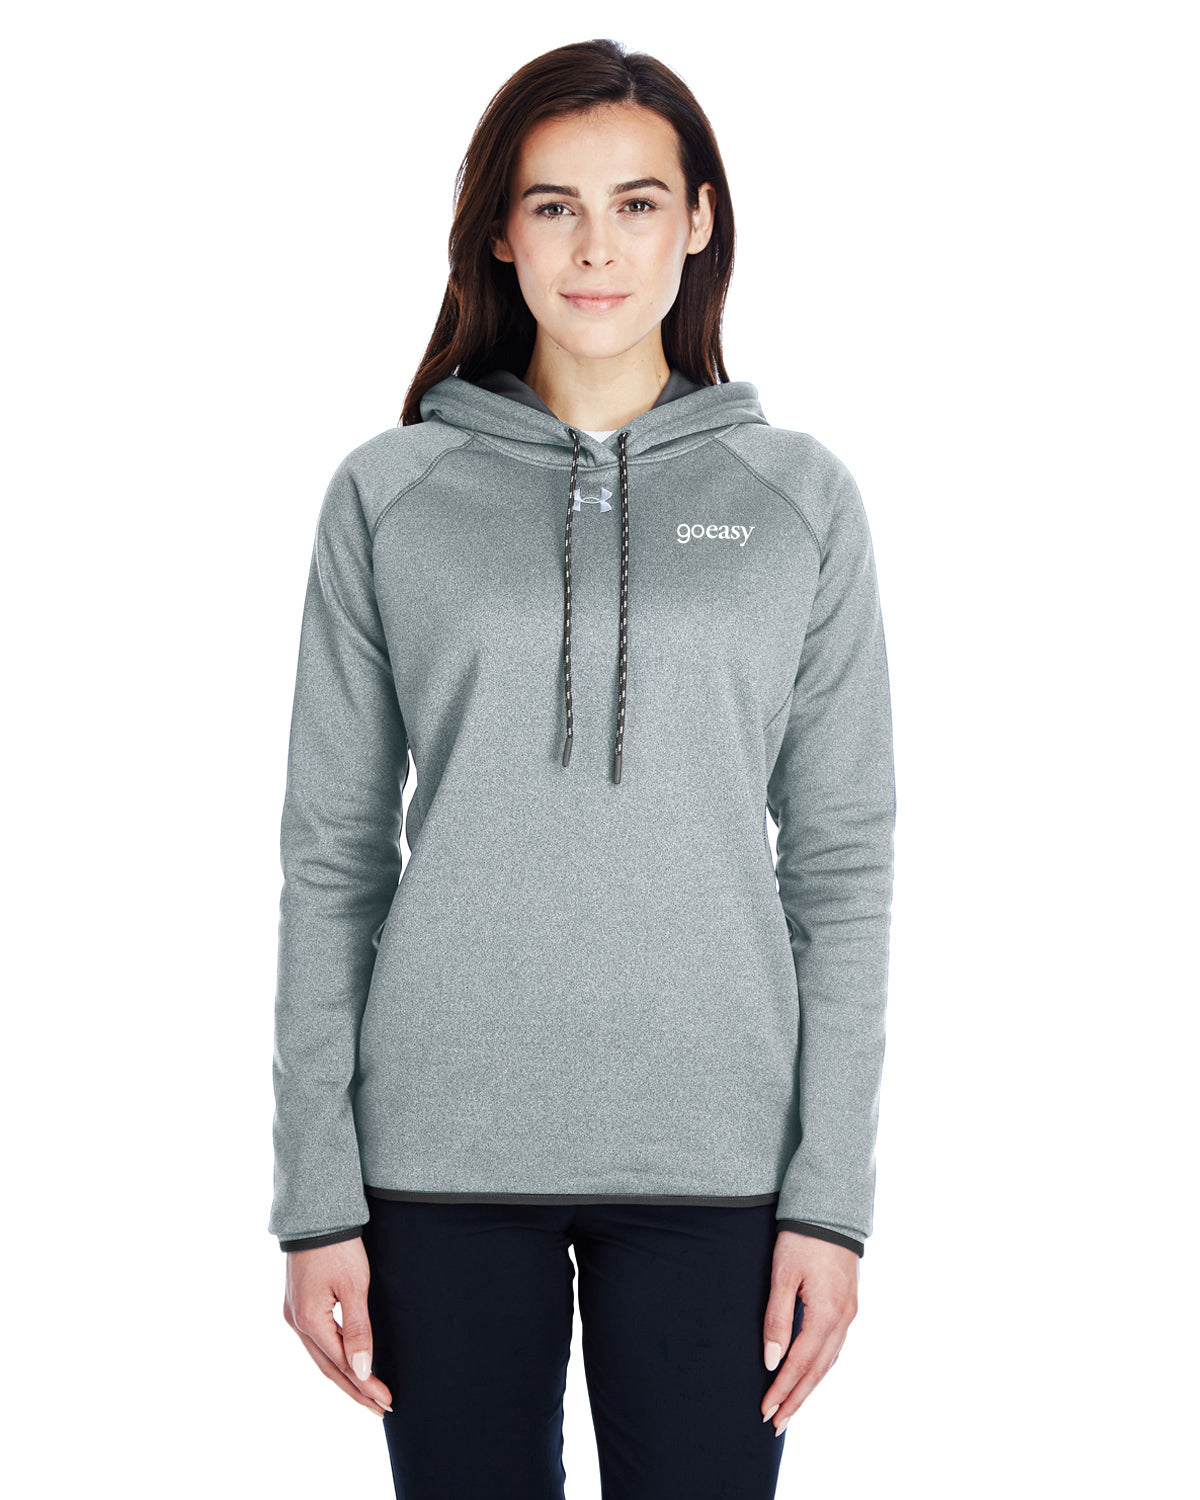 00f79dc962 Under Armour Women's Double Threat Armour Fleece® Hoodie